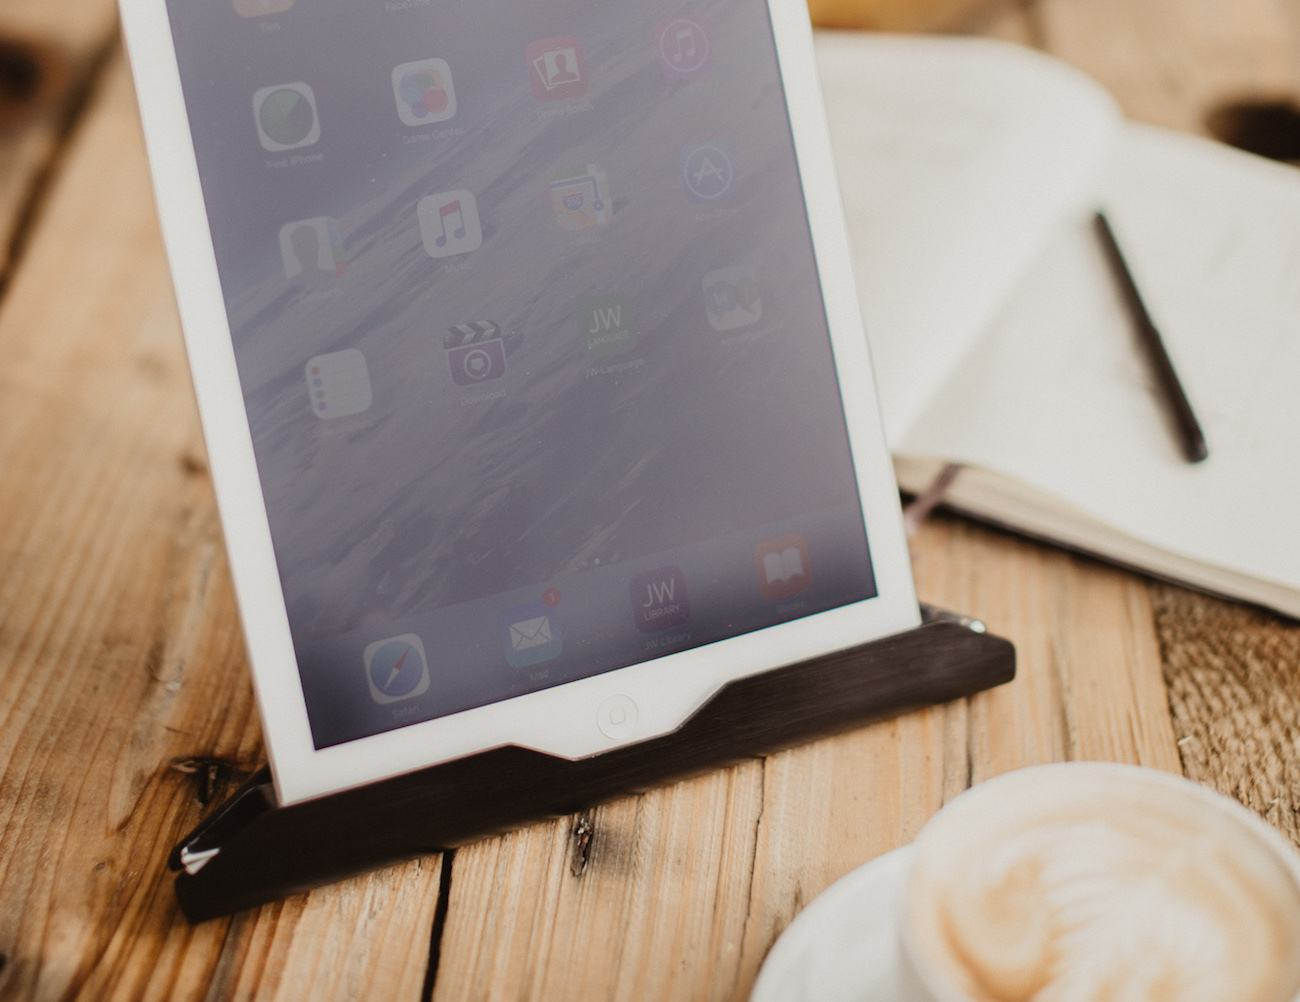 The T iPad and Tablet Holder